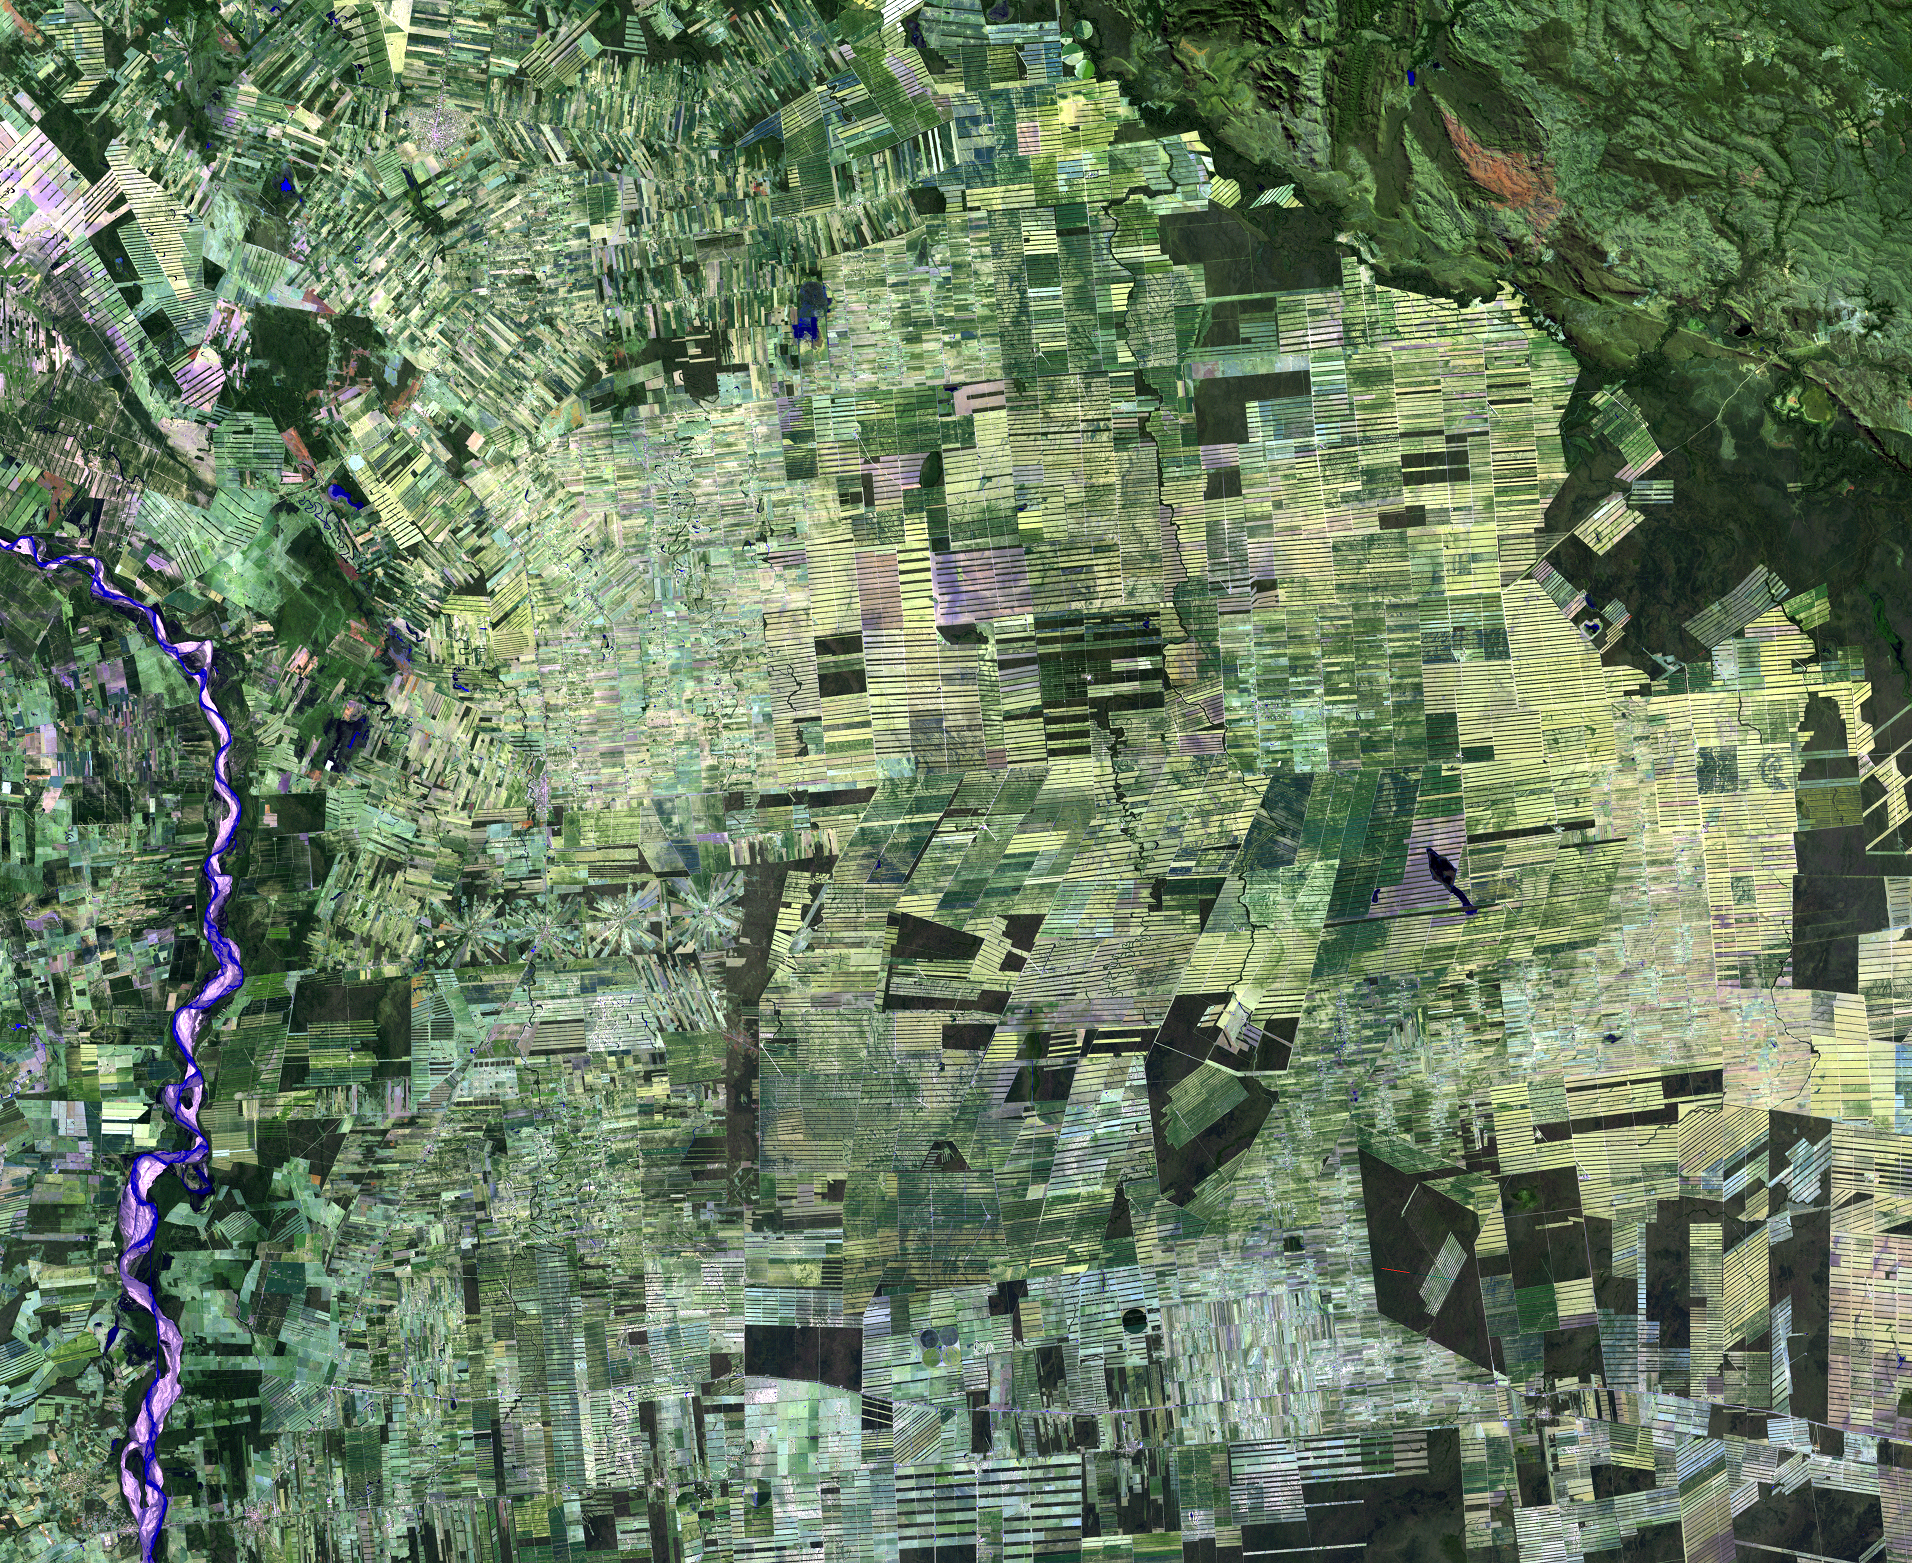 July 29, 2010, Landsat 5 (path/row 230/72) — Deforestation, Santa Cruz, Bolivia